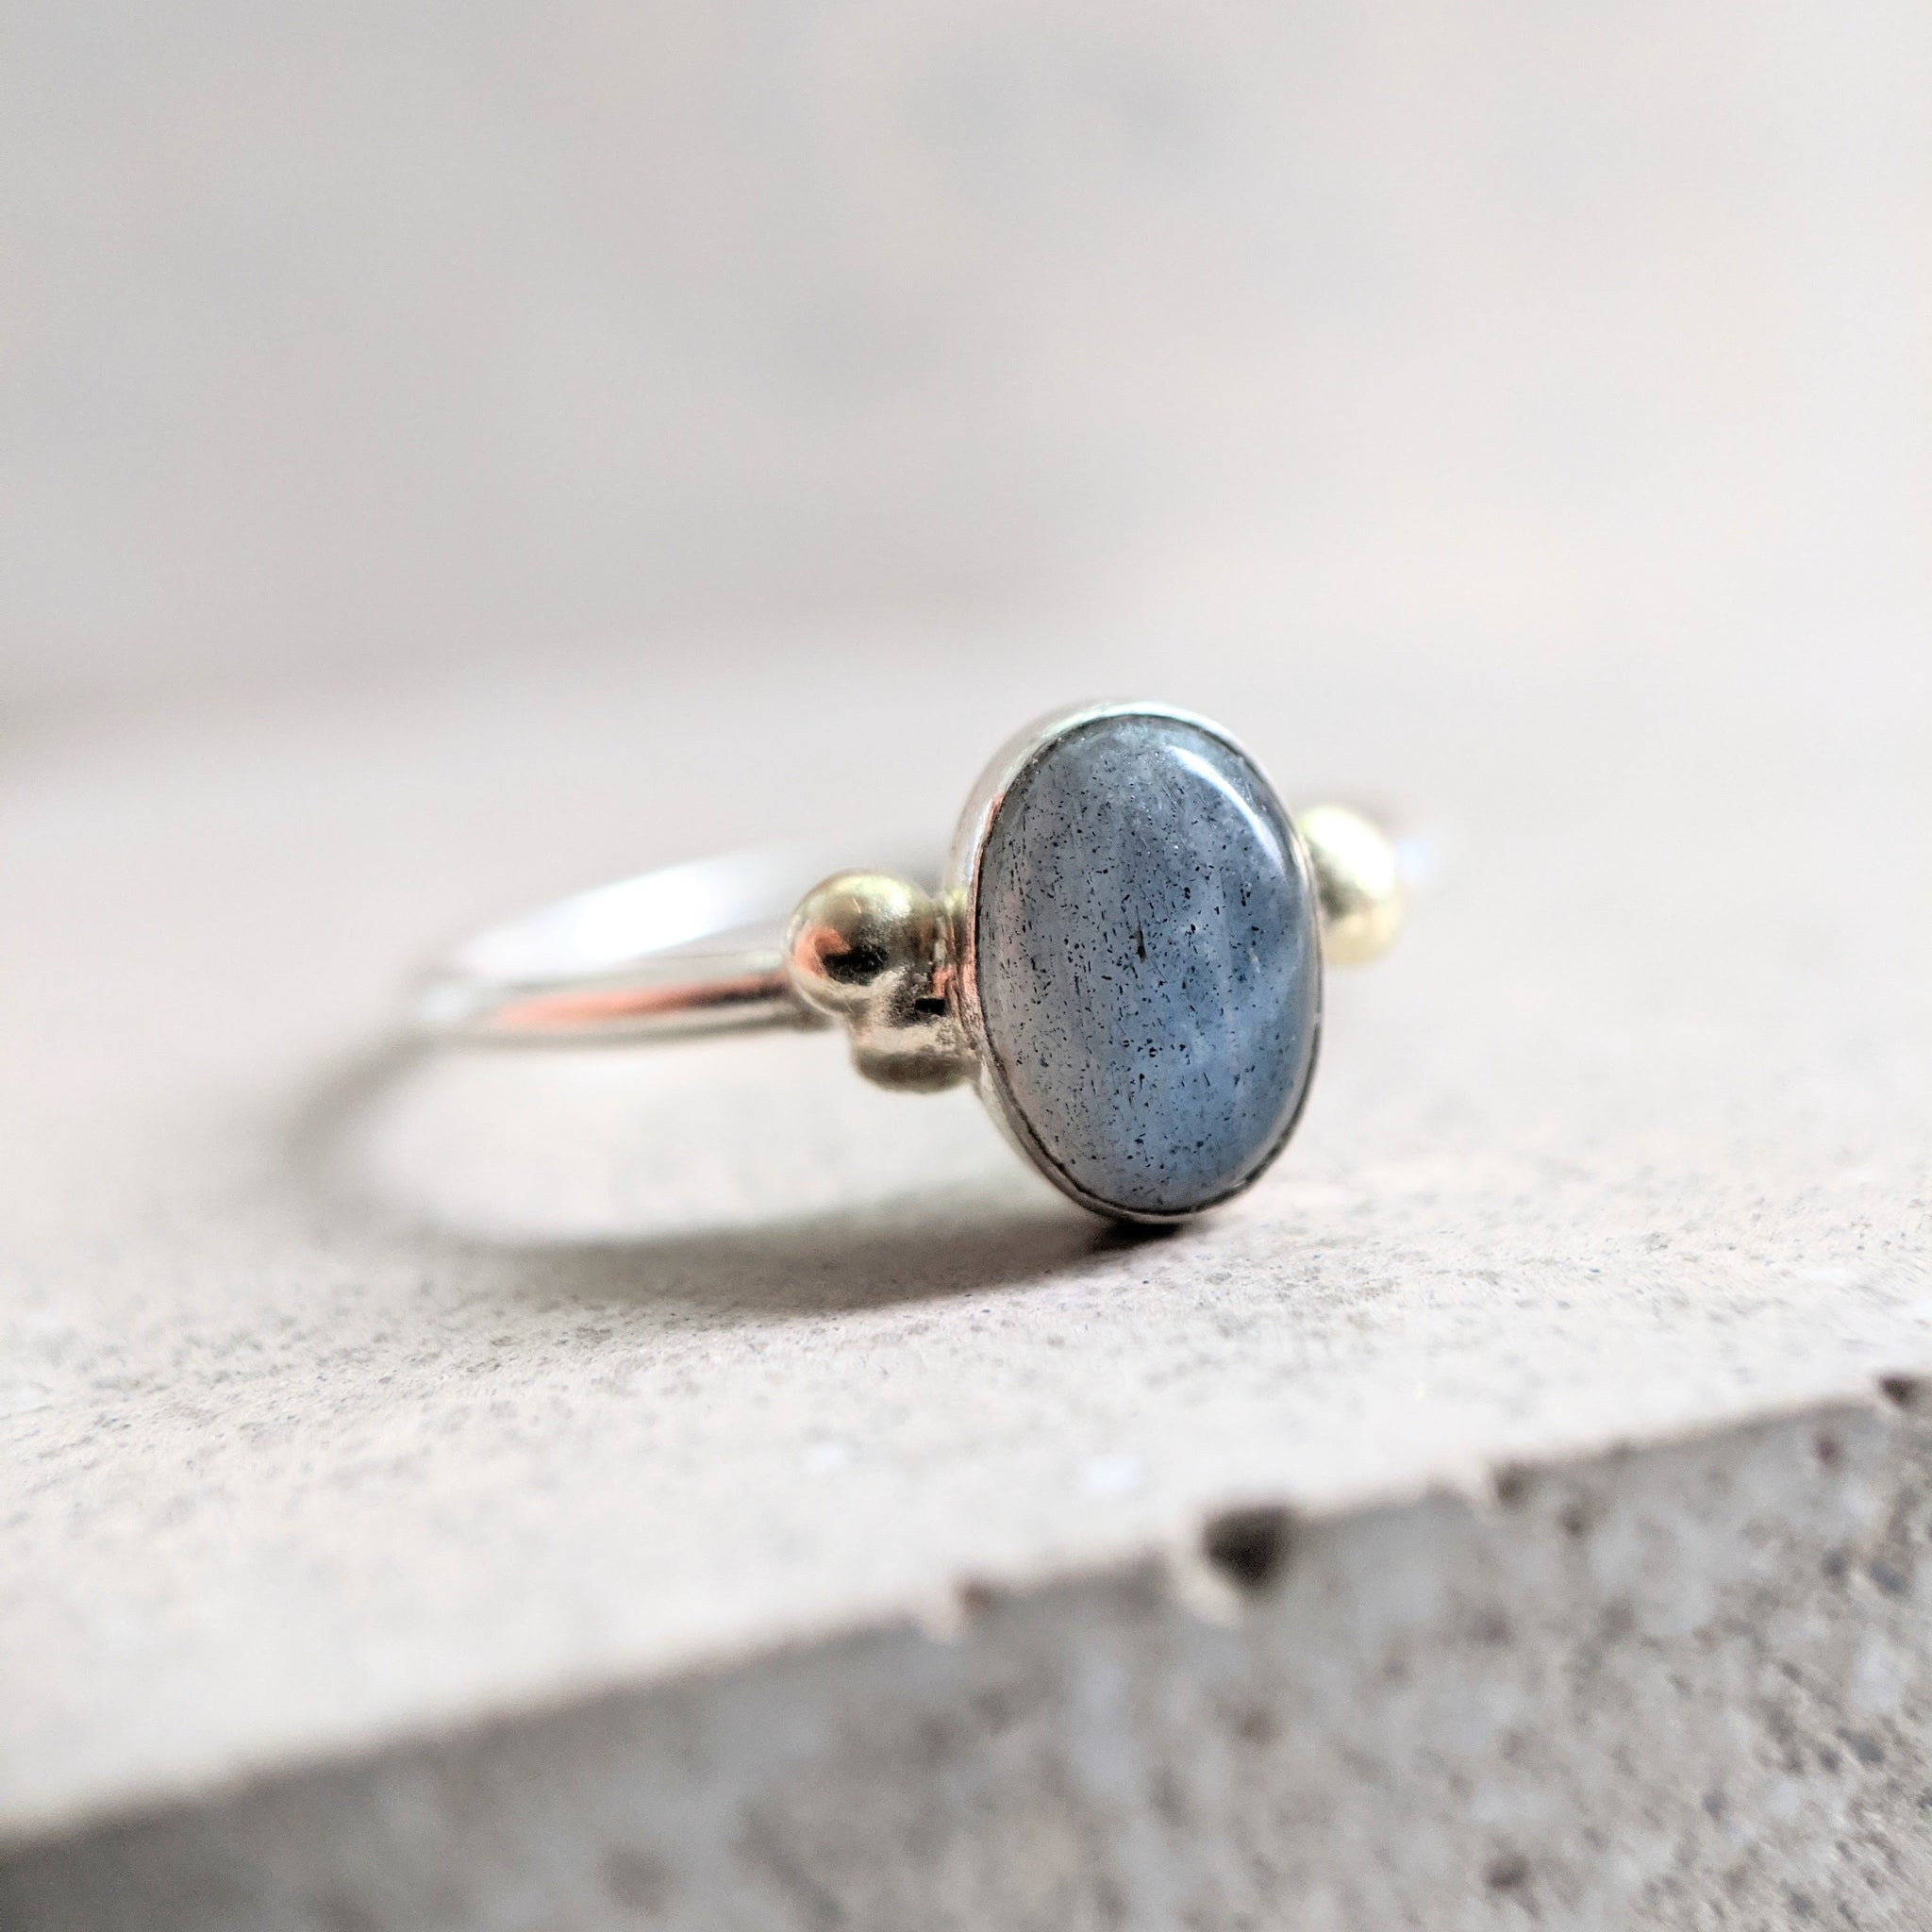 Michelle labradorite ring oval 3/4 shot